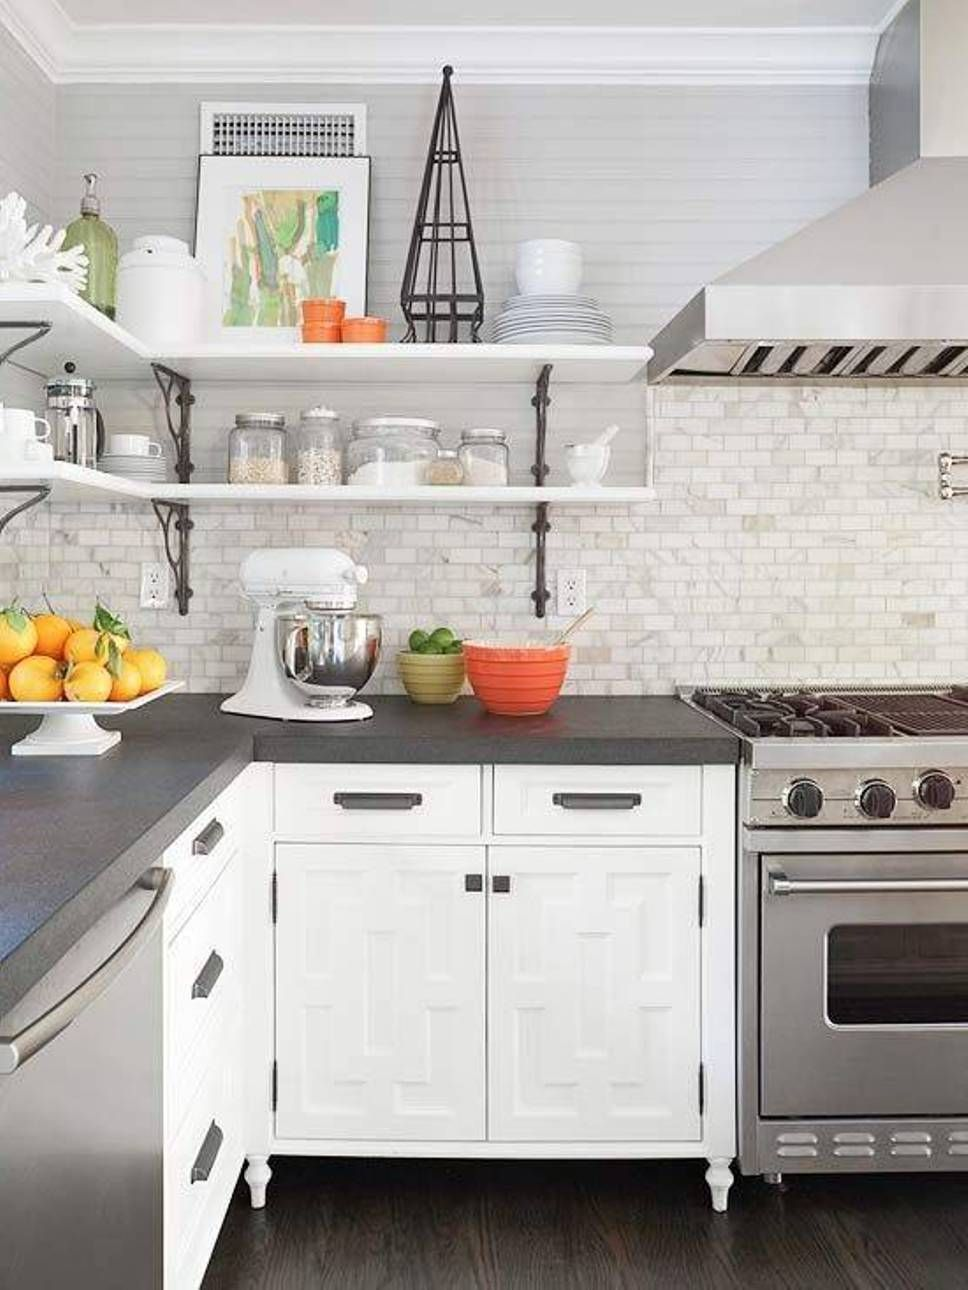 Countertop color in grey and white kitchen cabinets for for Gray and white kitchen cabinets